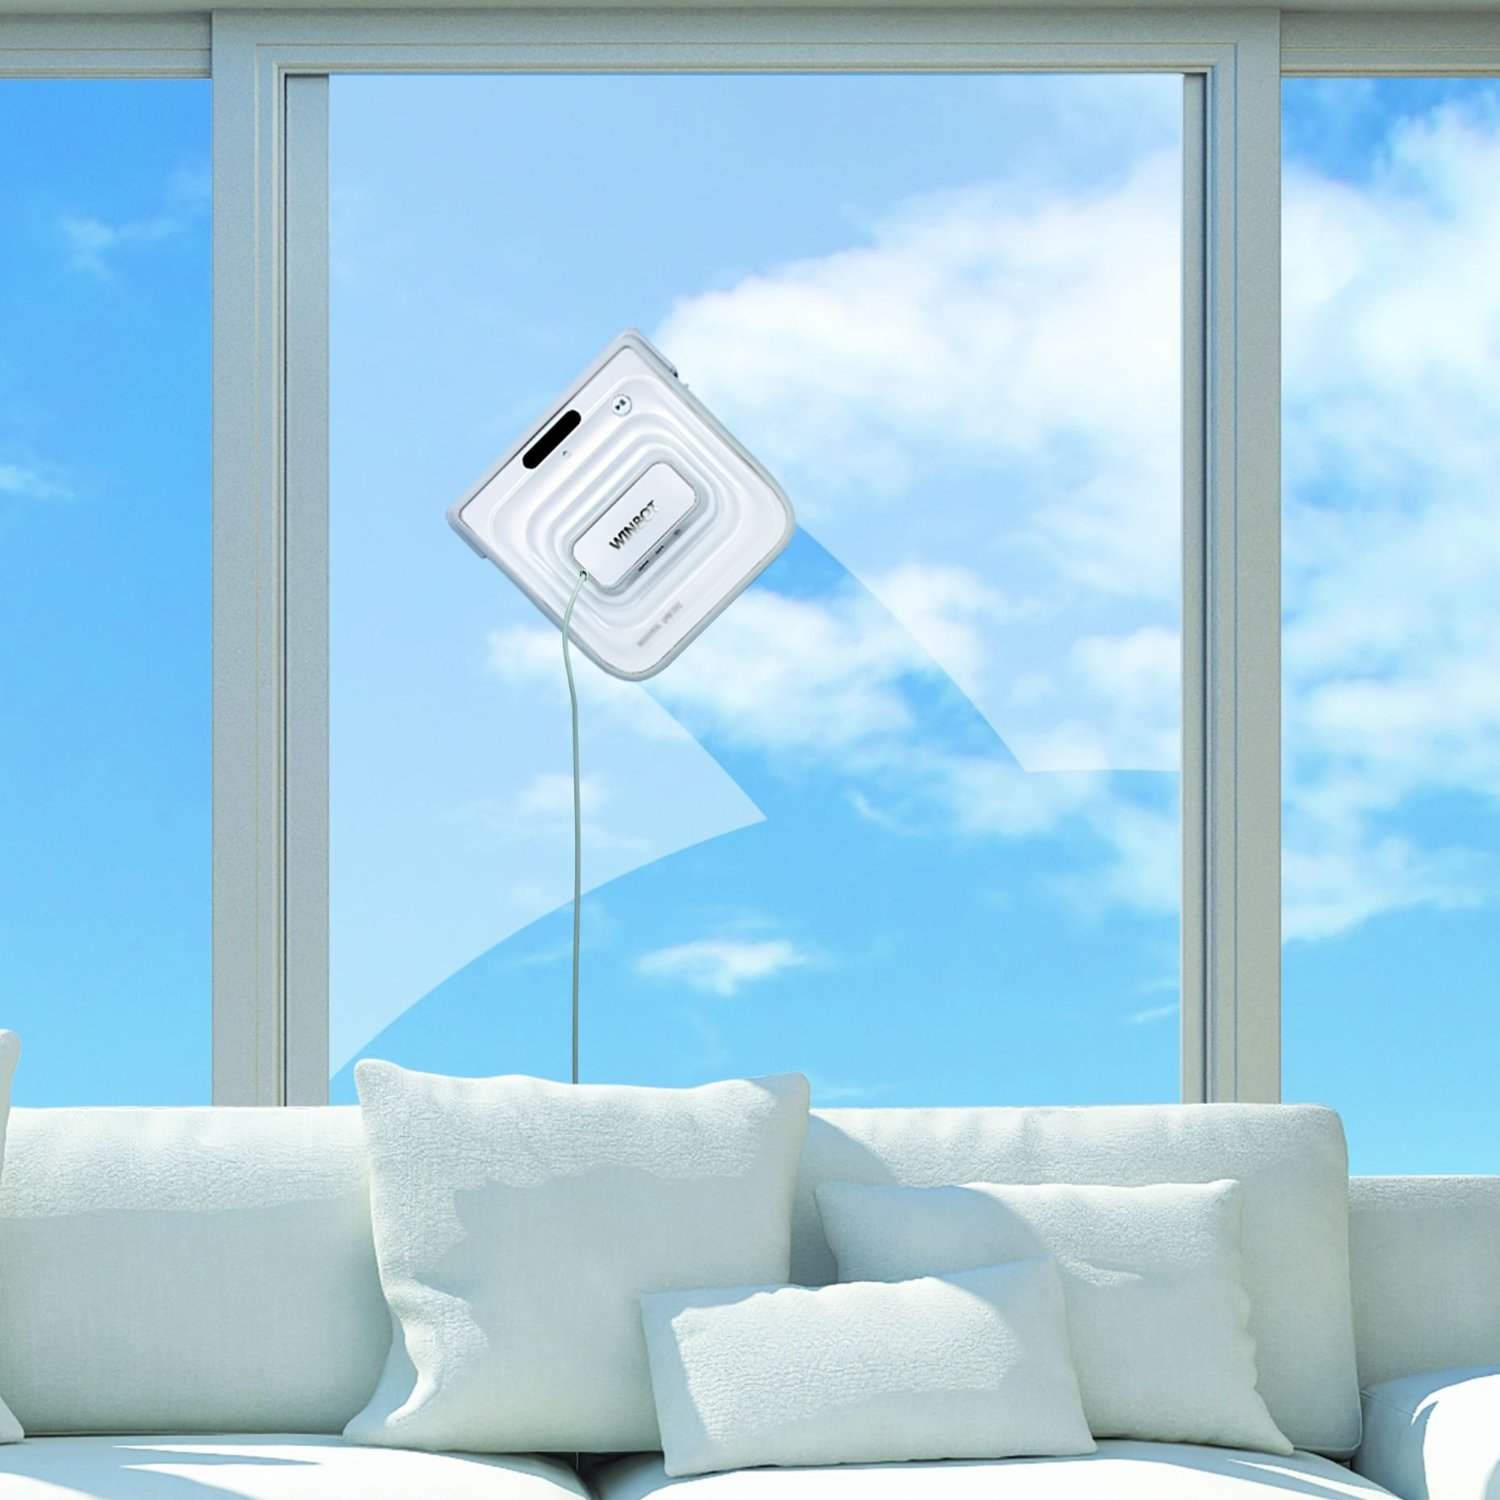 Know someone with a lot of windows in their house? Meet Winbot the window cleaning robot.  Operation is very easy – users just power her on, securely place her on the window, and press start. Winbot's Pathfinder Technology automatically scans and...